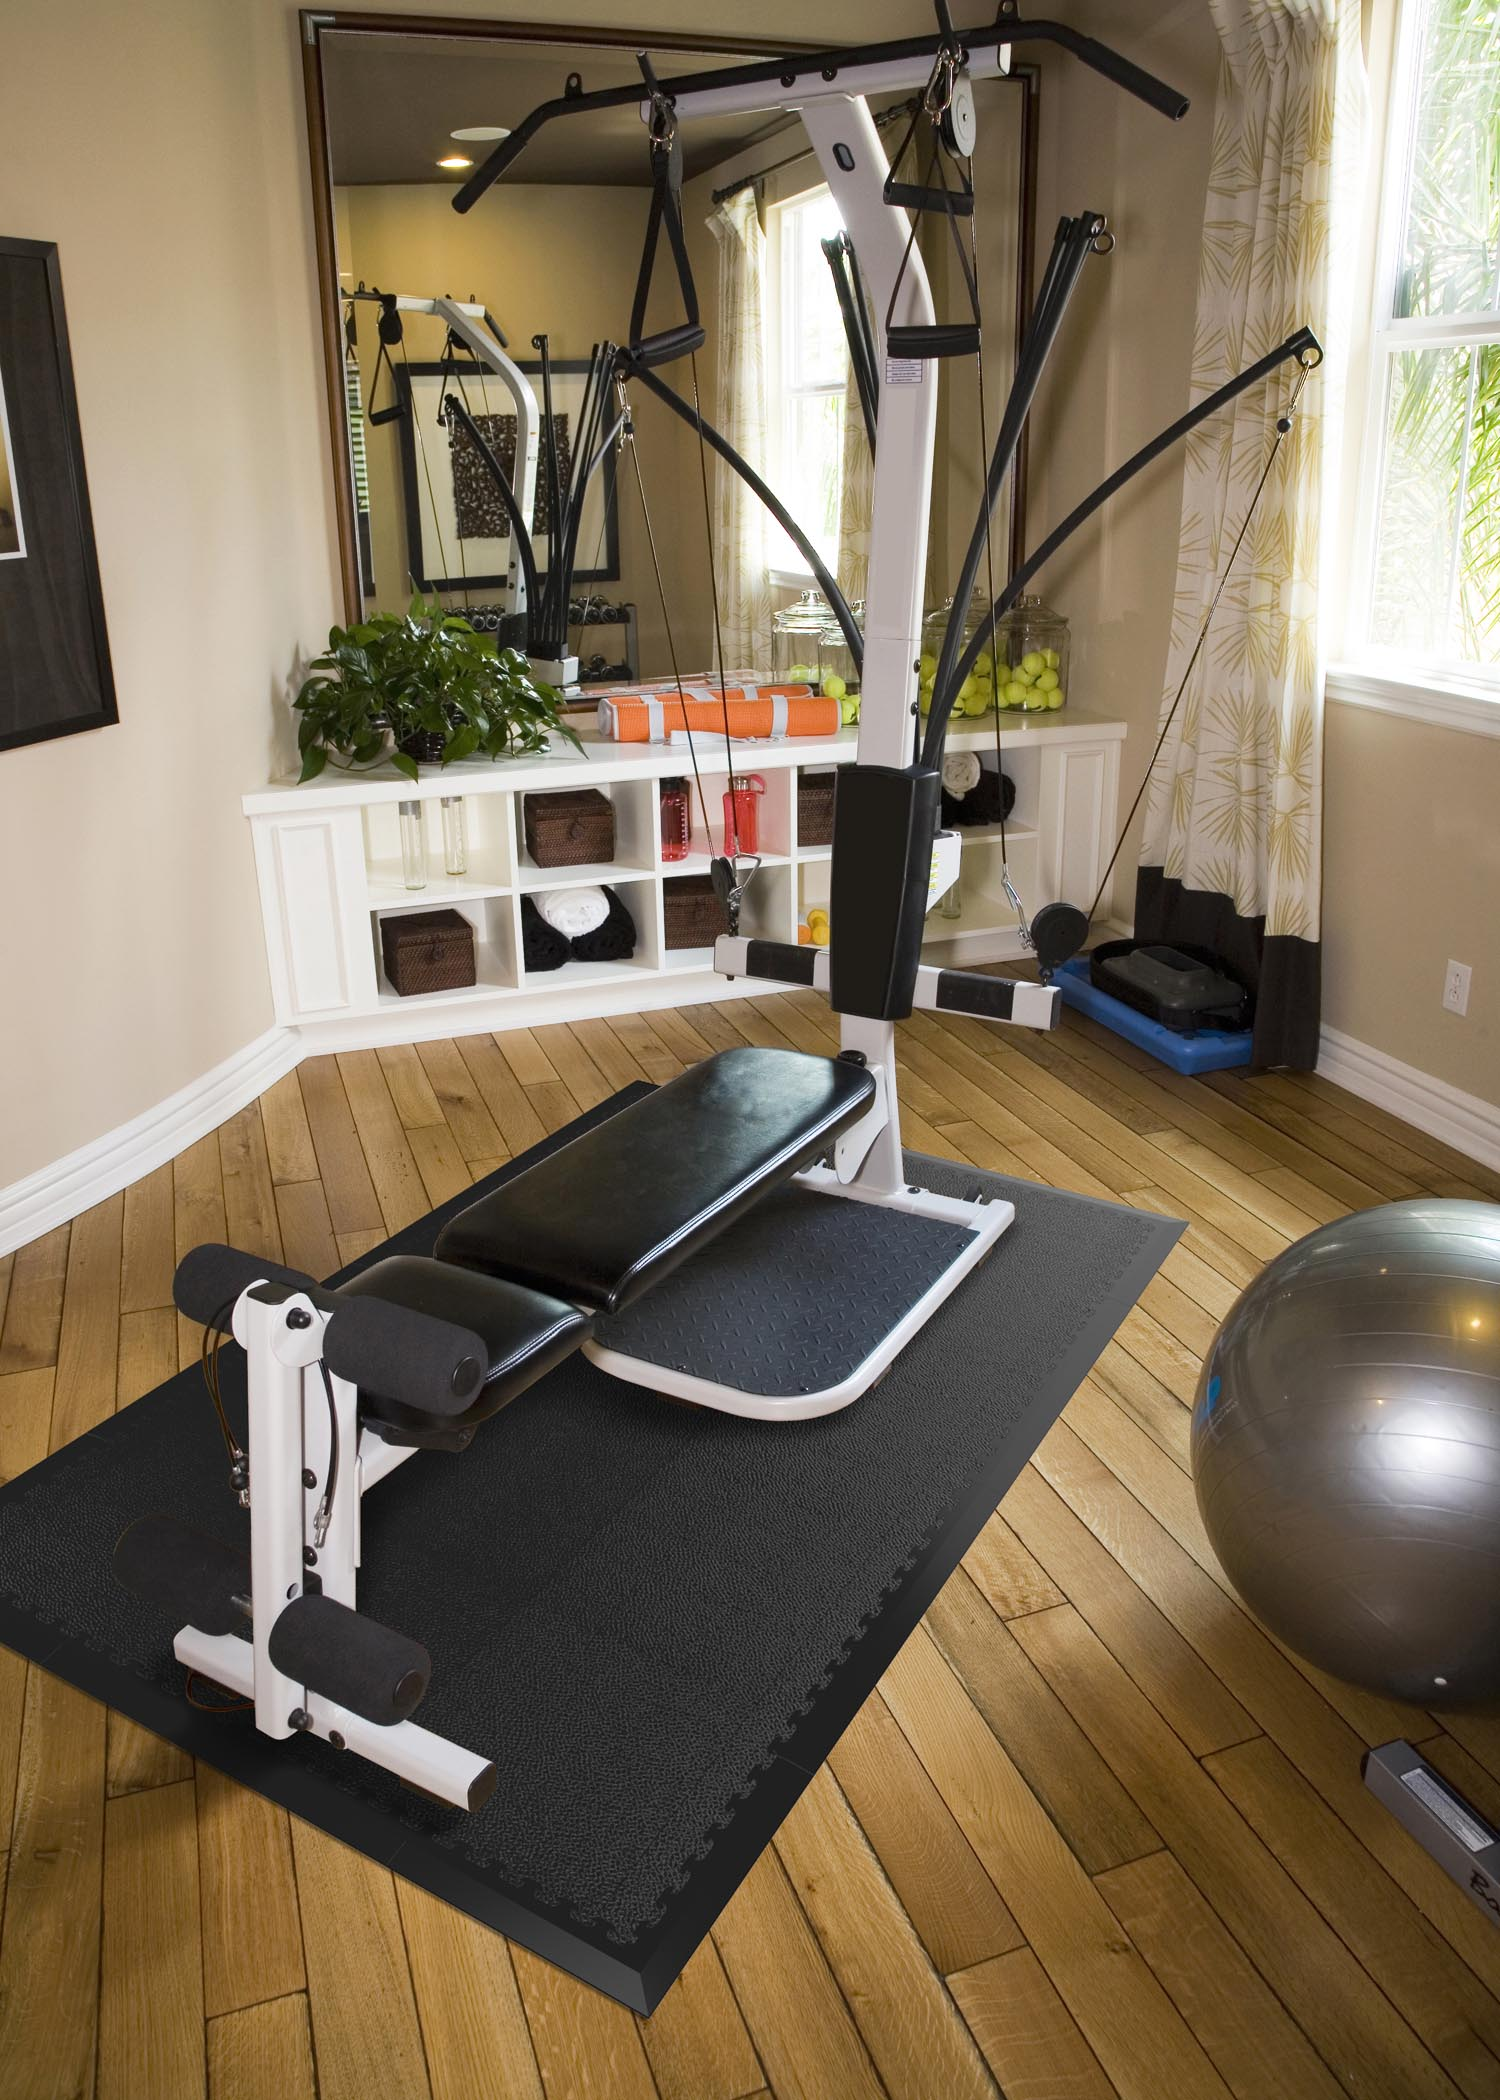 Diy gym flooring for your toughest workouts norsk blog for Small room flooring ideas